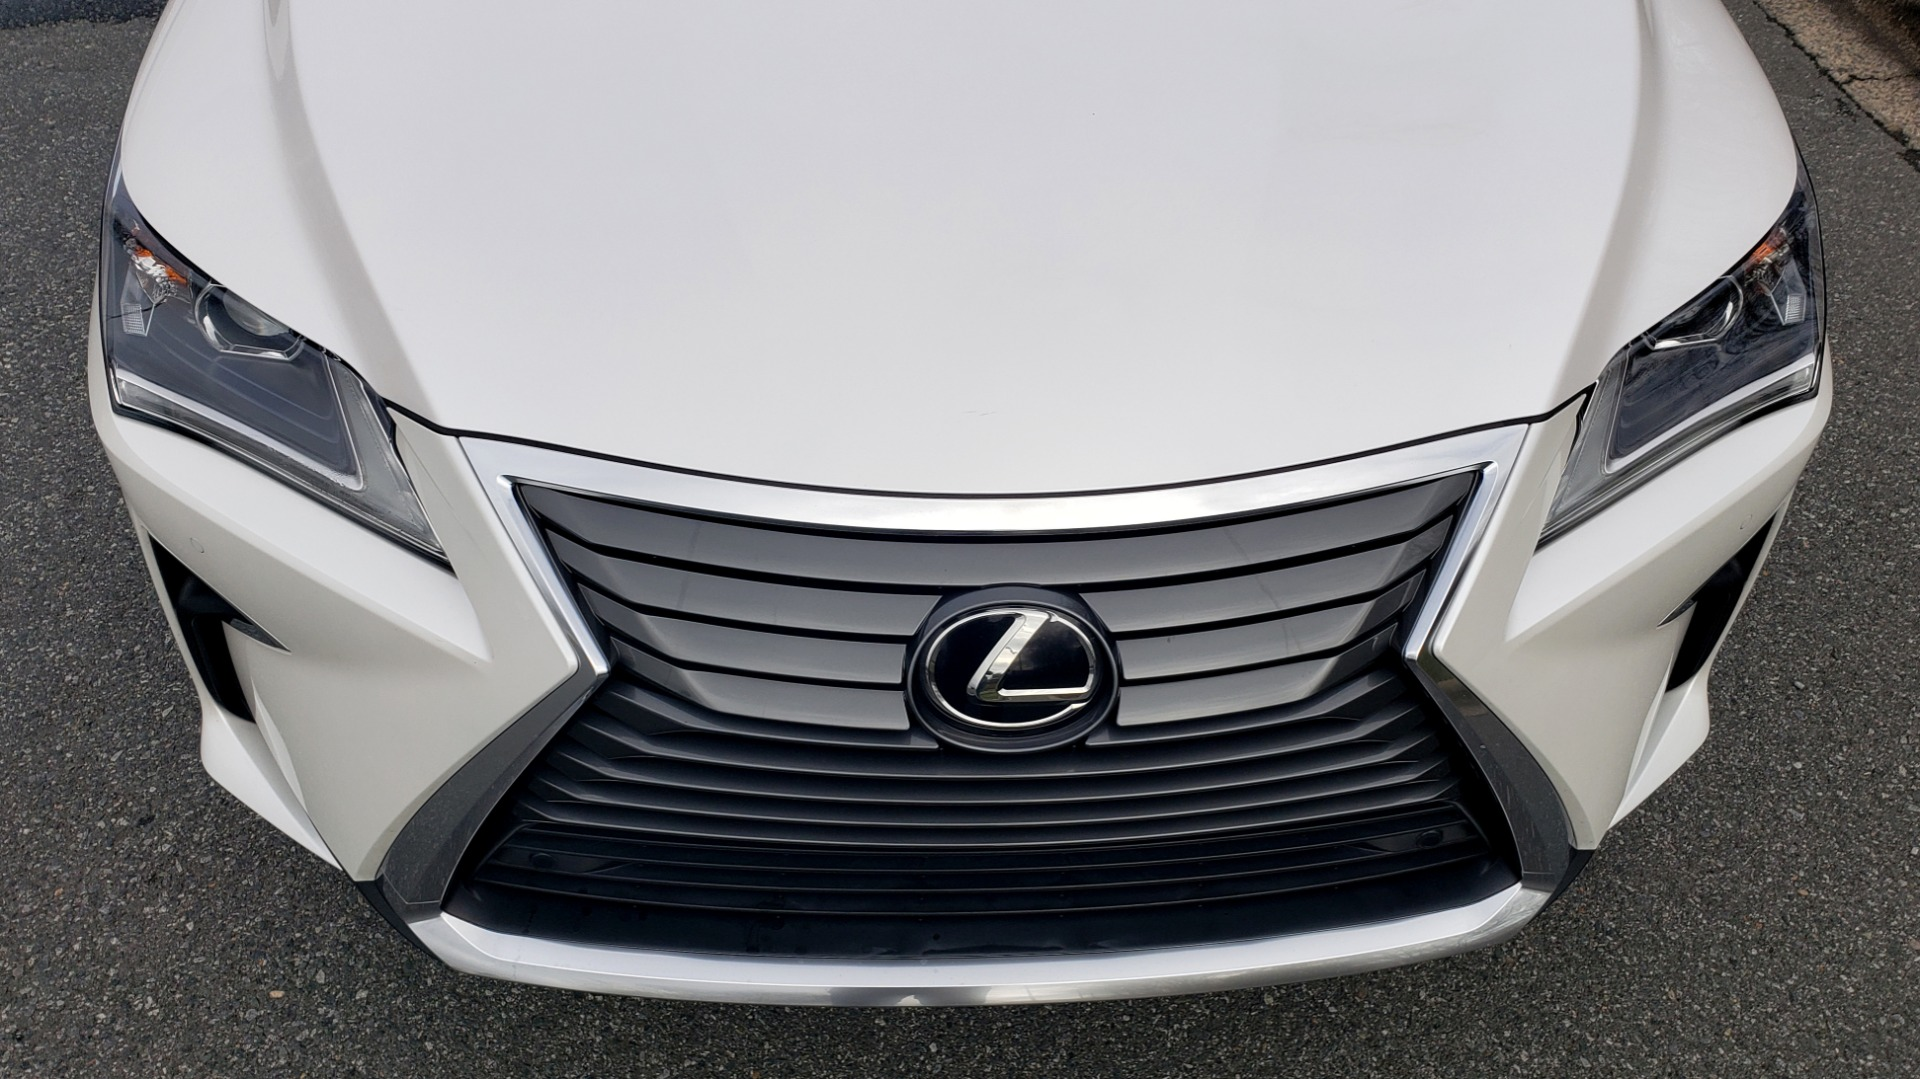 Used 2017 Lexus RX 350 PREMIUM / BSM / SNRF / VENT SEATS / REARVIEW for sale Sold at Formula Imports in Charlotte NC 28227 13